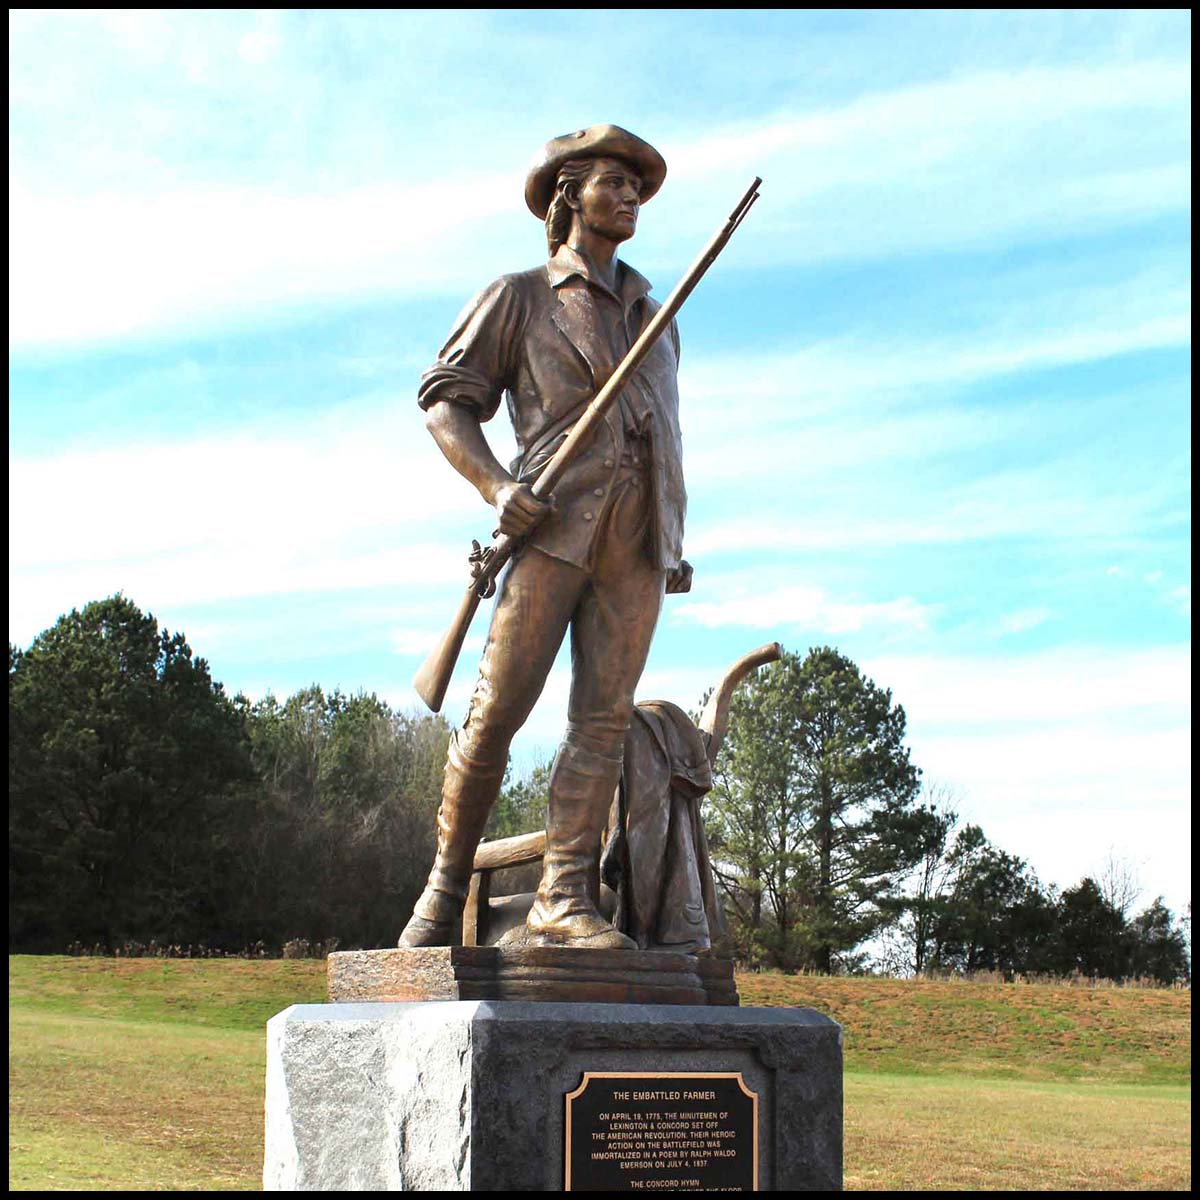 exterior photo of bronze sculpture of Minuteman on stone base